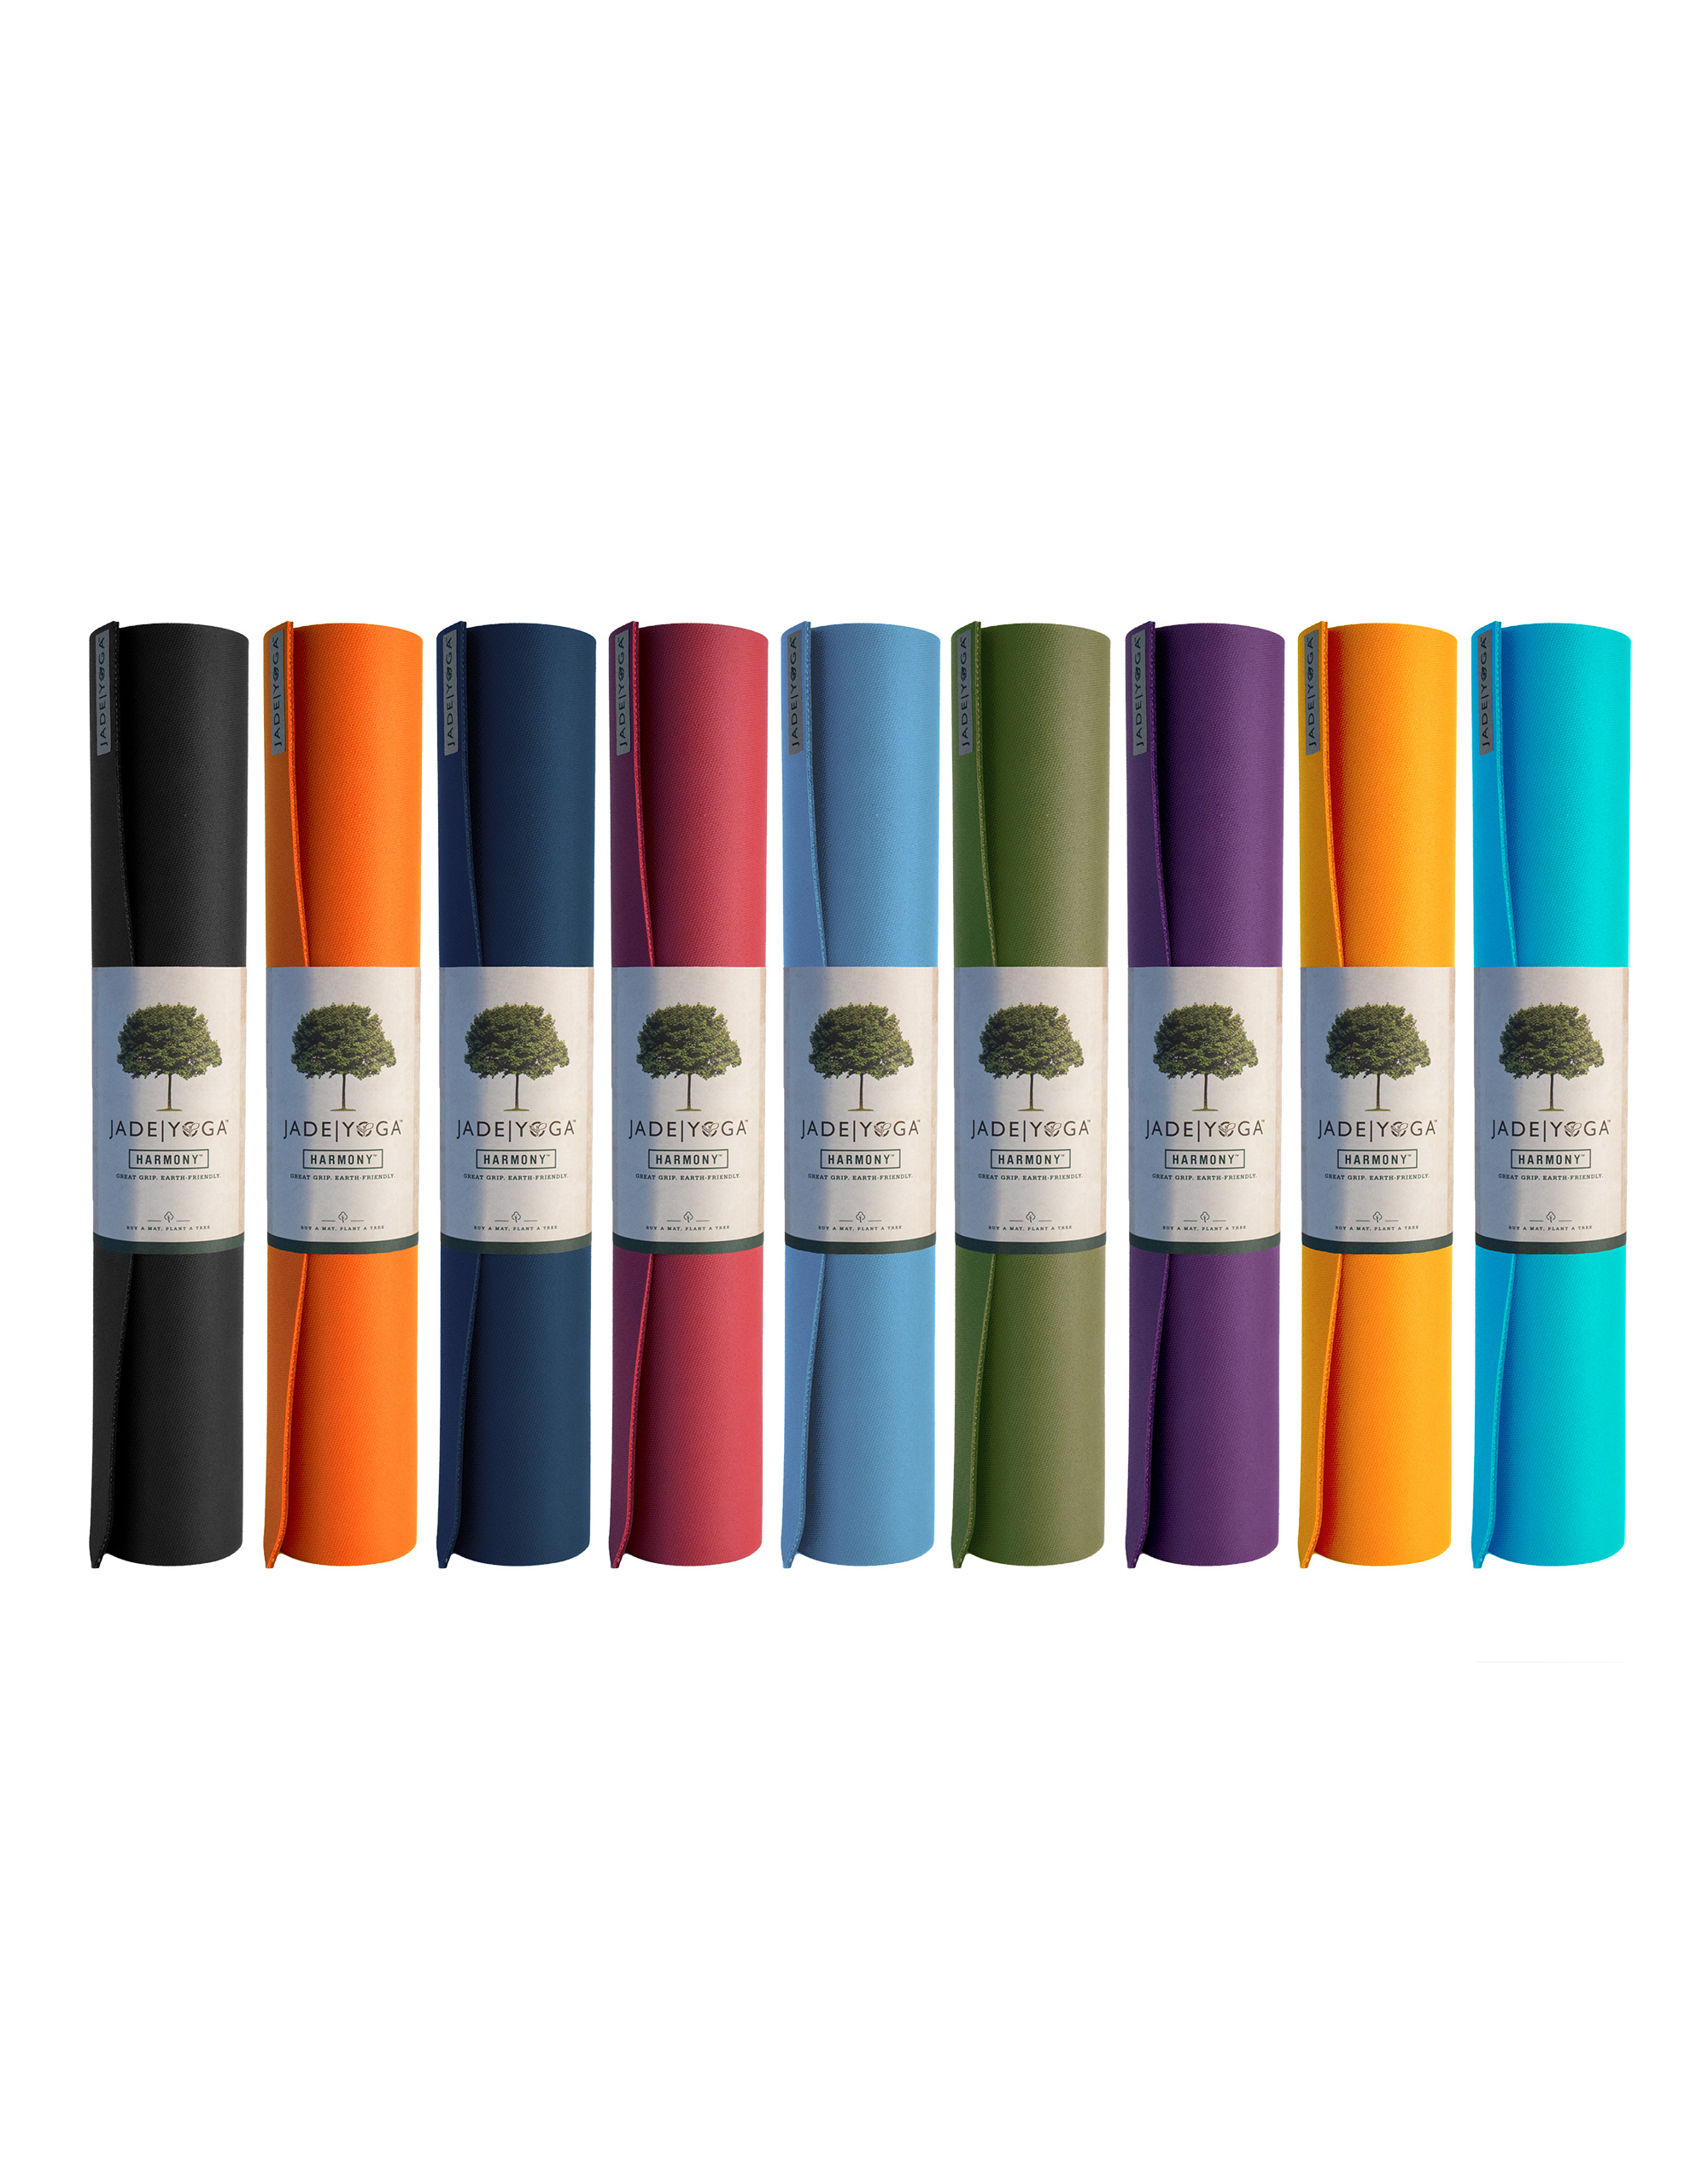 mat the professional yoga you how jade higher mats pick best to living harmony for